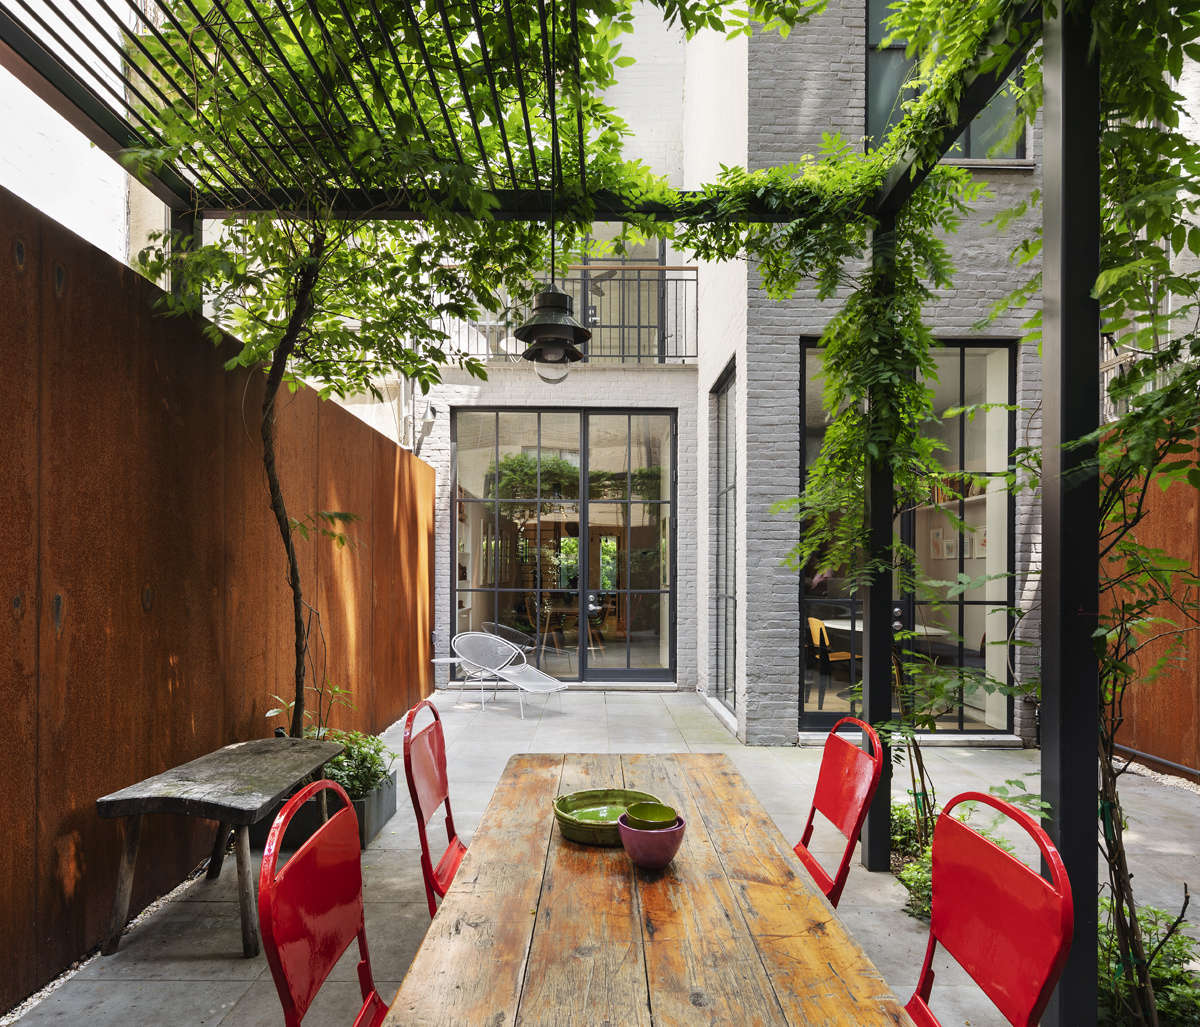 """""""We essentially built the garden around the wisteria,"""" O'Neill says, of the tree on the left. It's the only plant they kept from the original backyard. The walls are made from sheets of corten steel, the same type of metal favored by artist Richard Serra. """"Sam likes the way it weathers."""""""